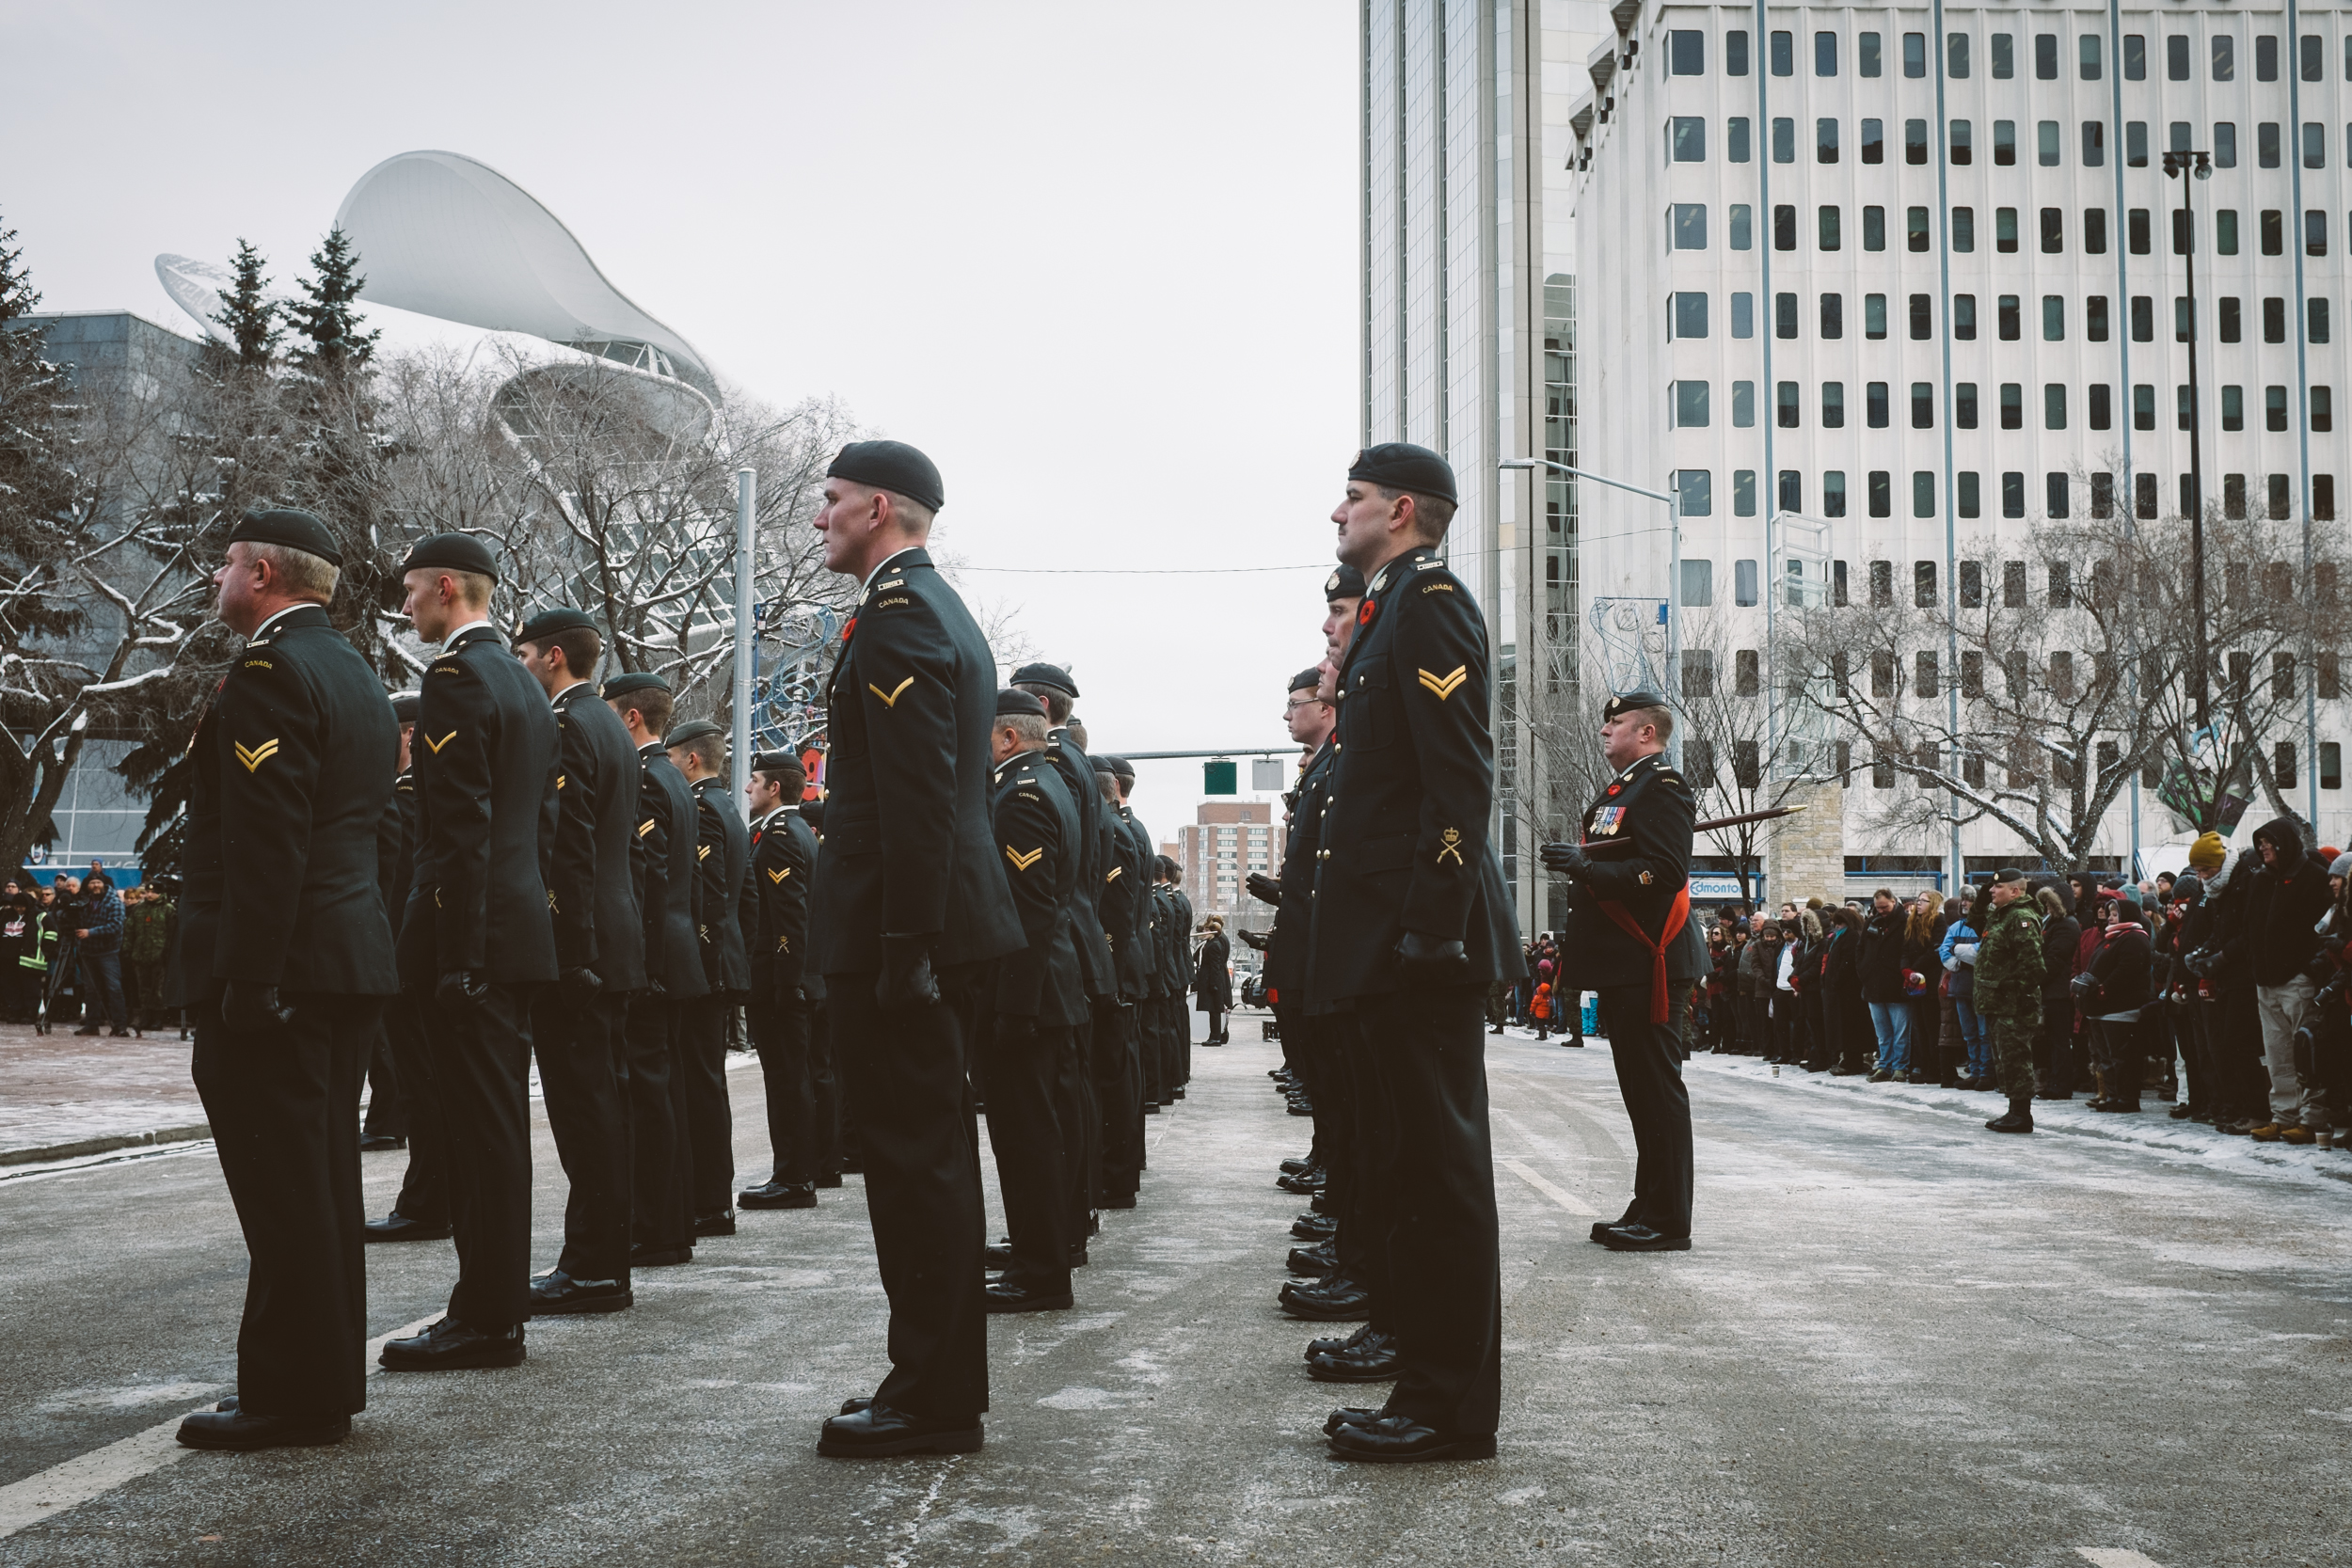 Edmonton Remembrance Day